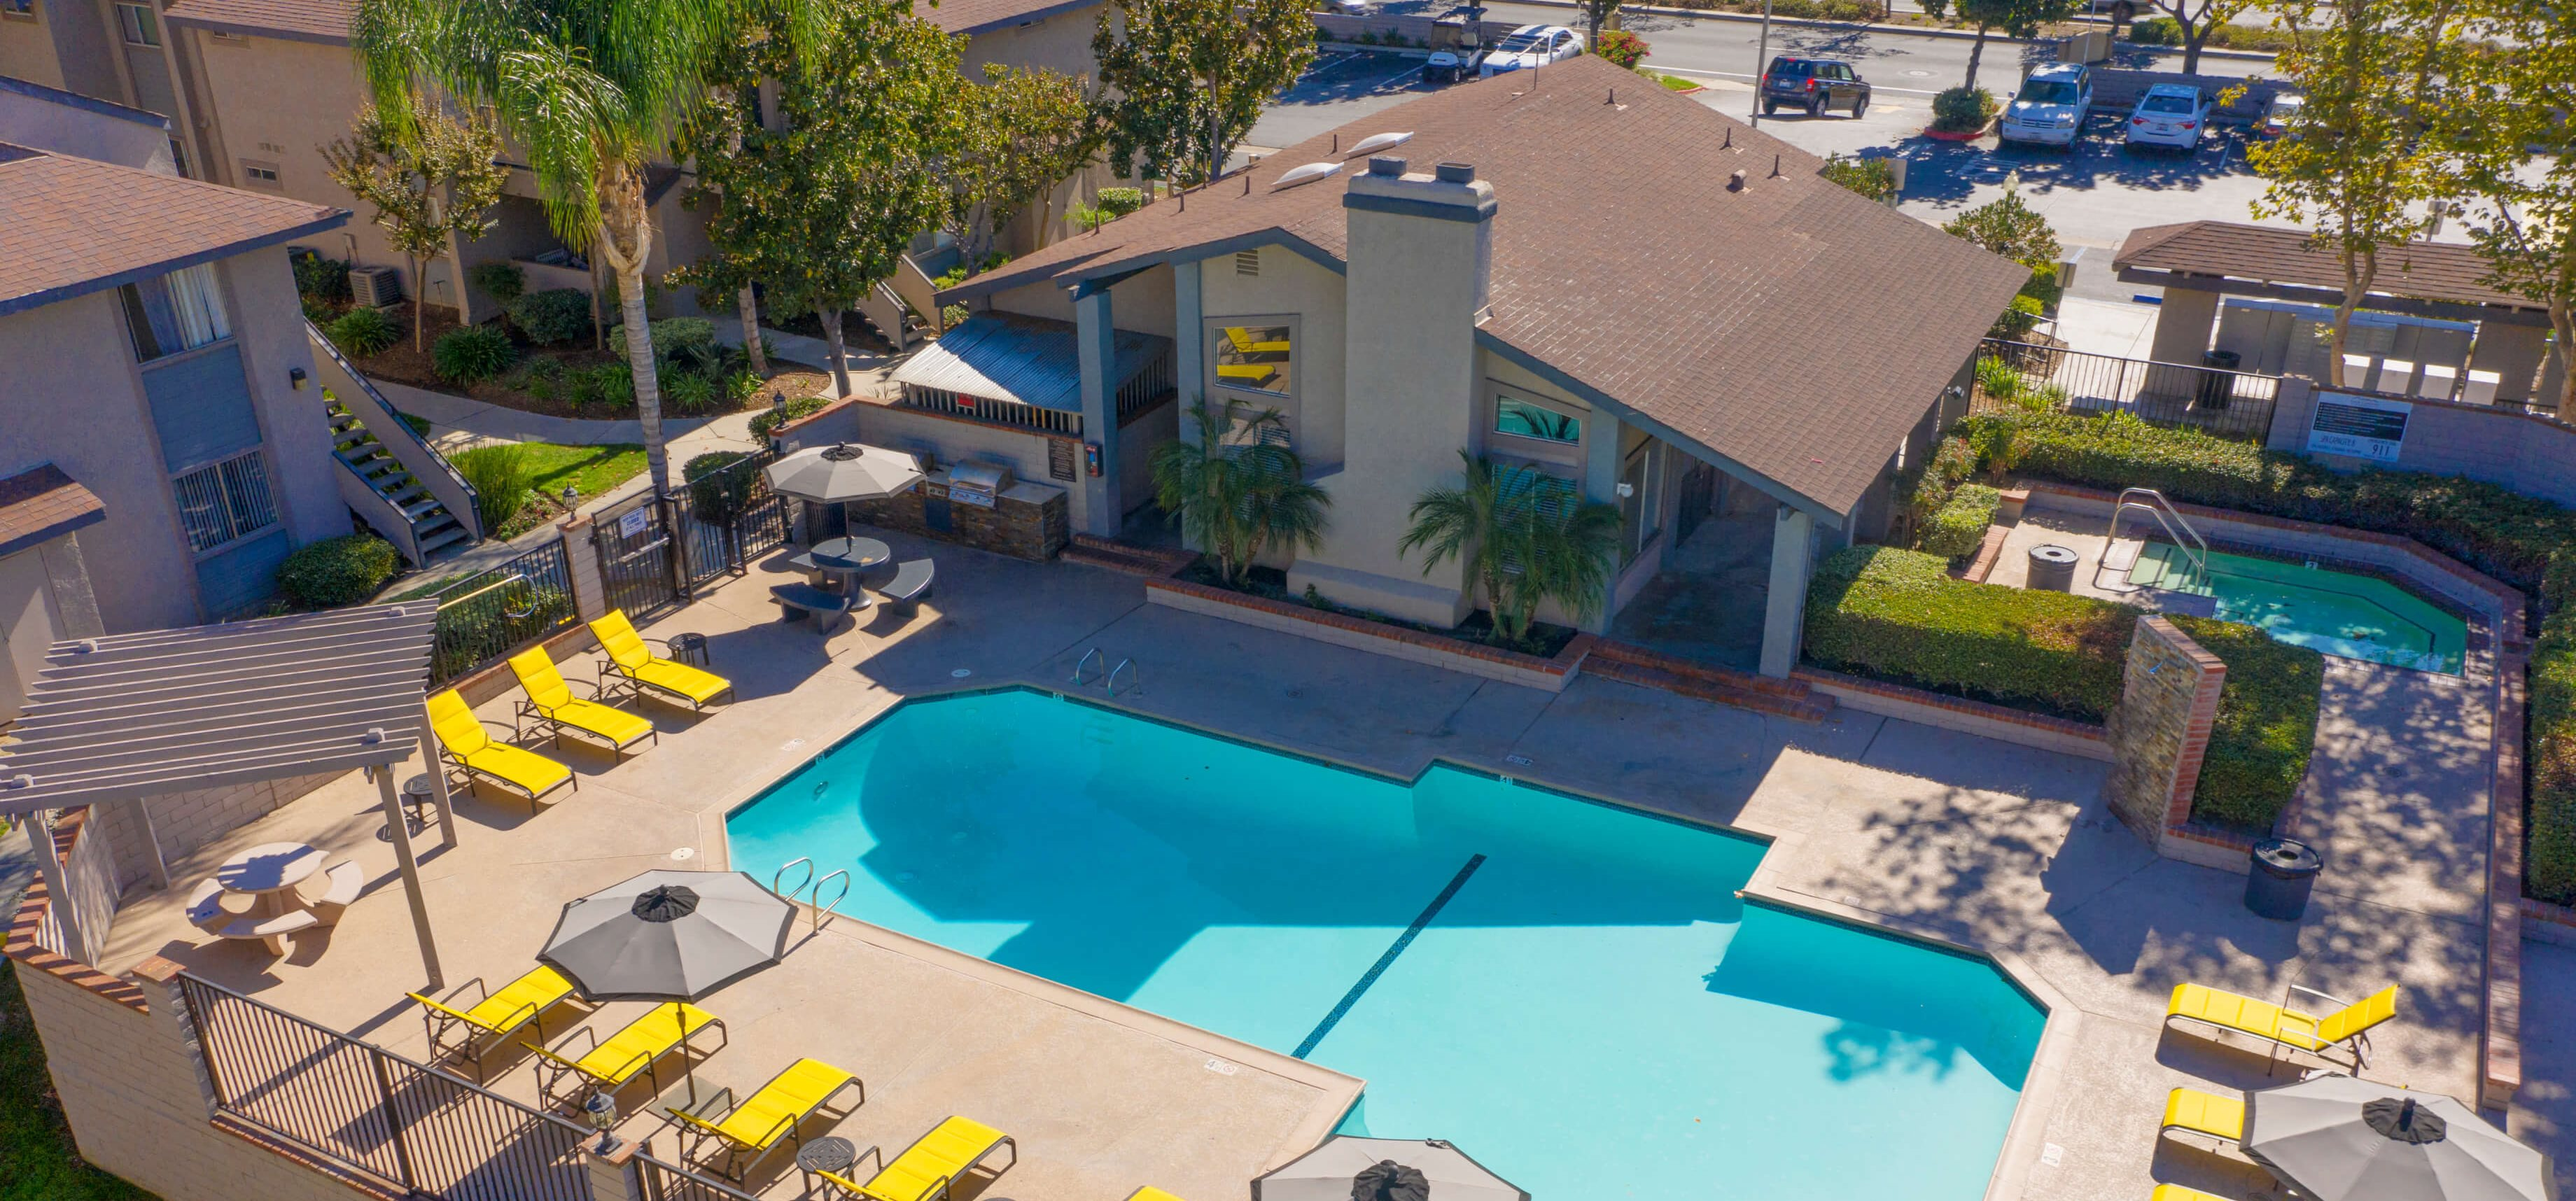 Pool View of Sage Canyon Apartments Temecula CA